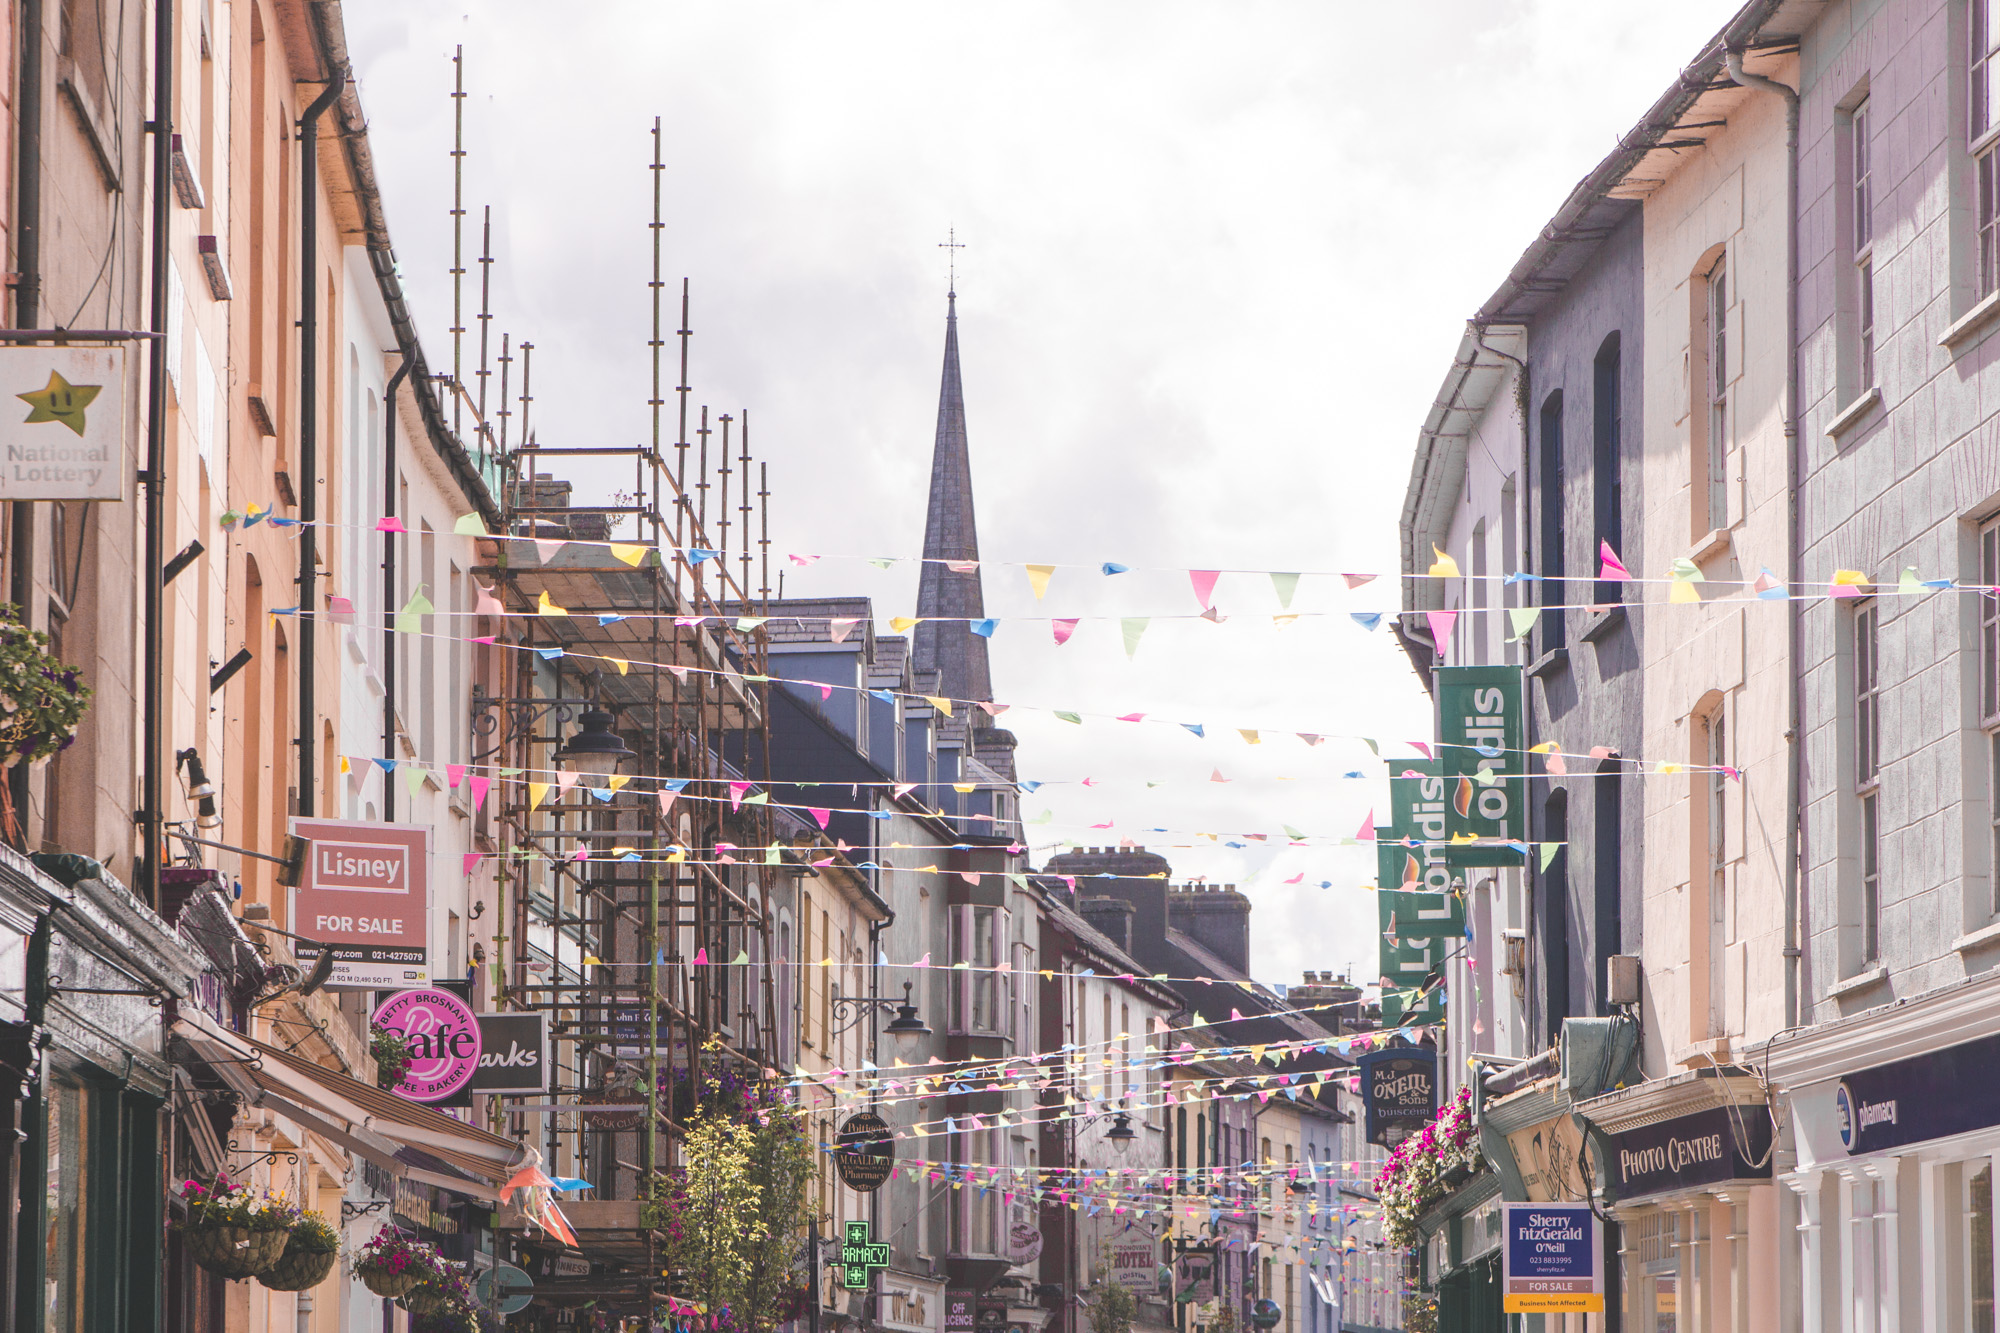 The town of Clonakilty in West Cork, Ireland is so colorful